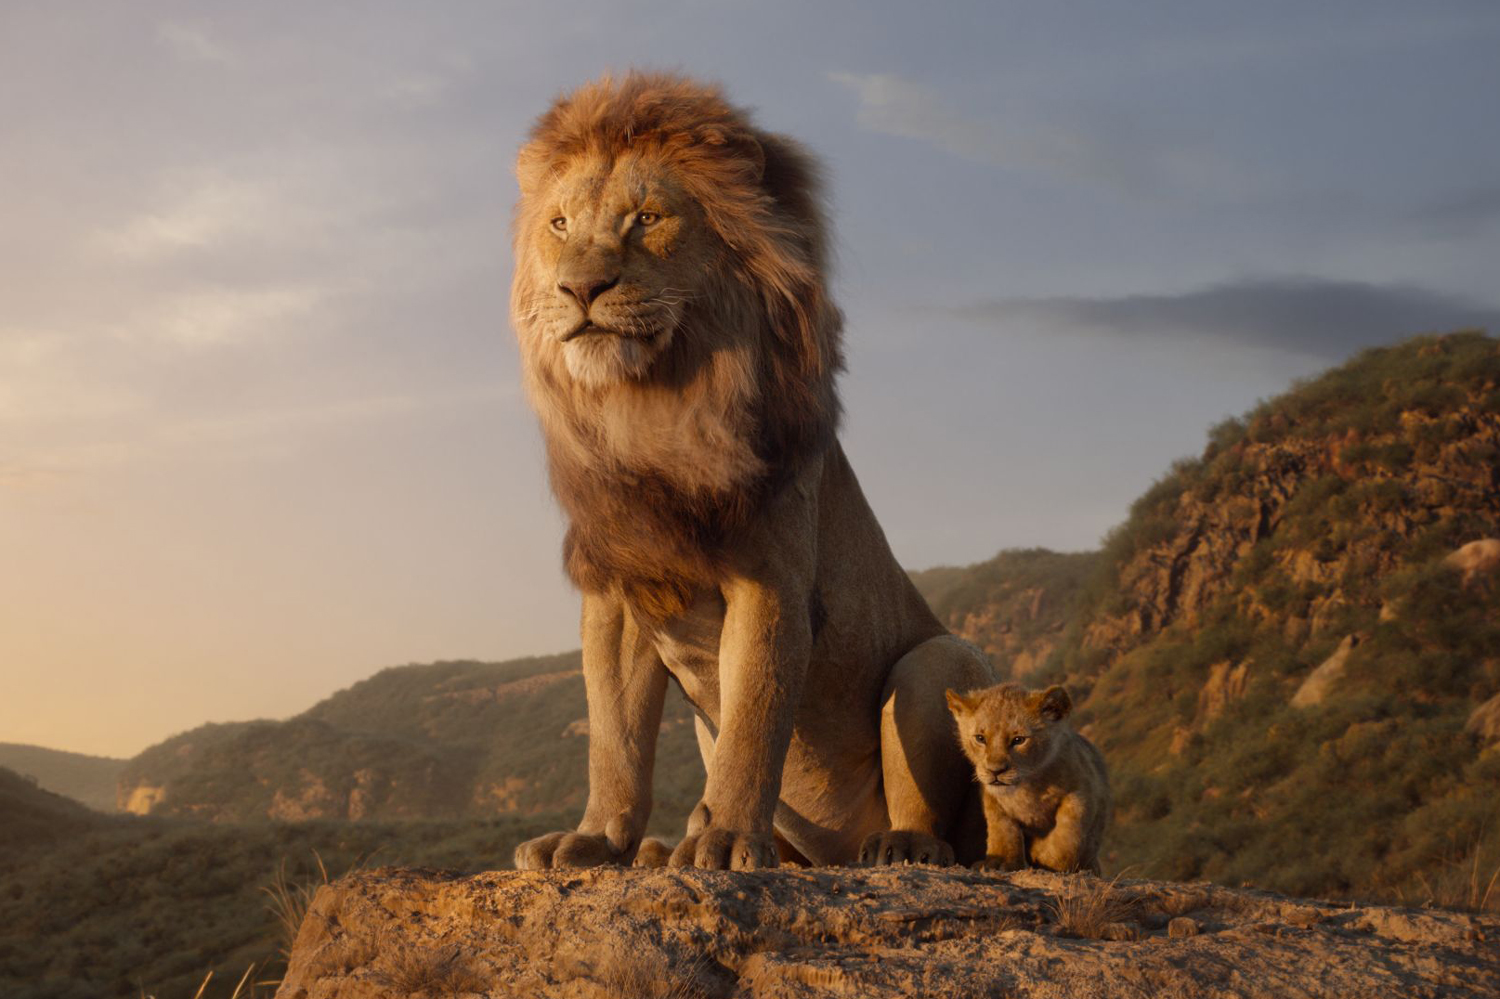 The Lion King Disney Live Action Remake Review